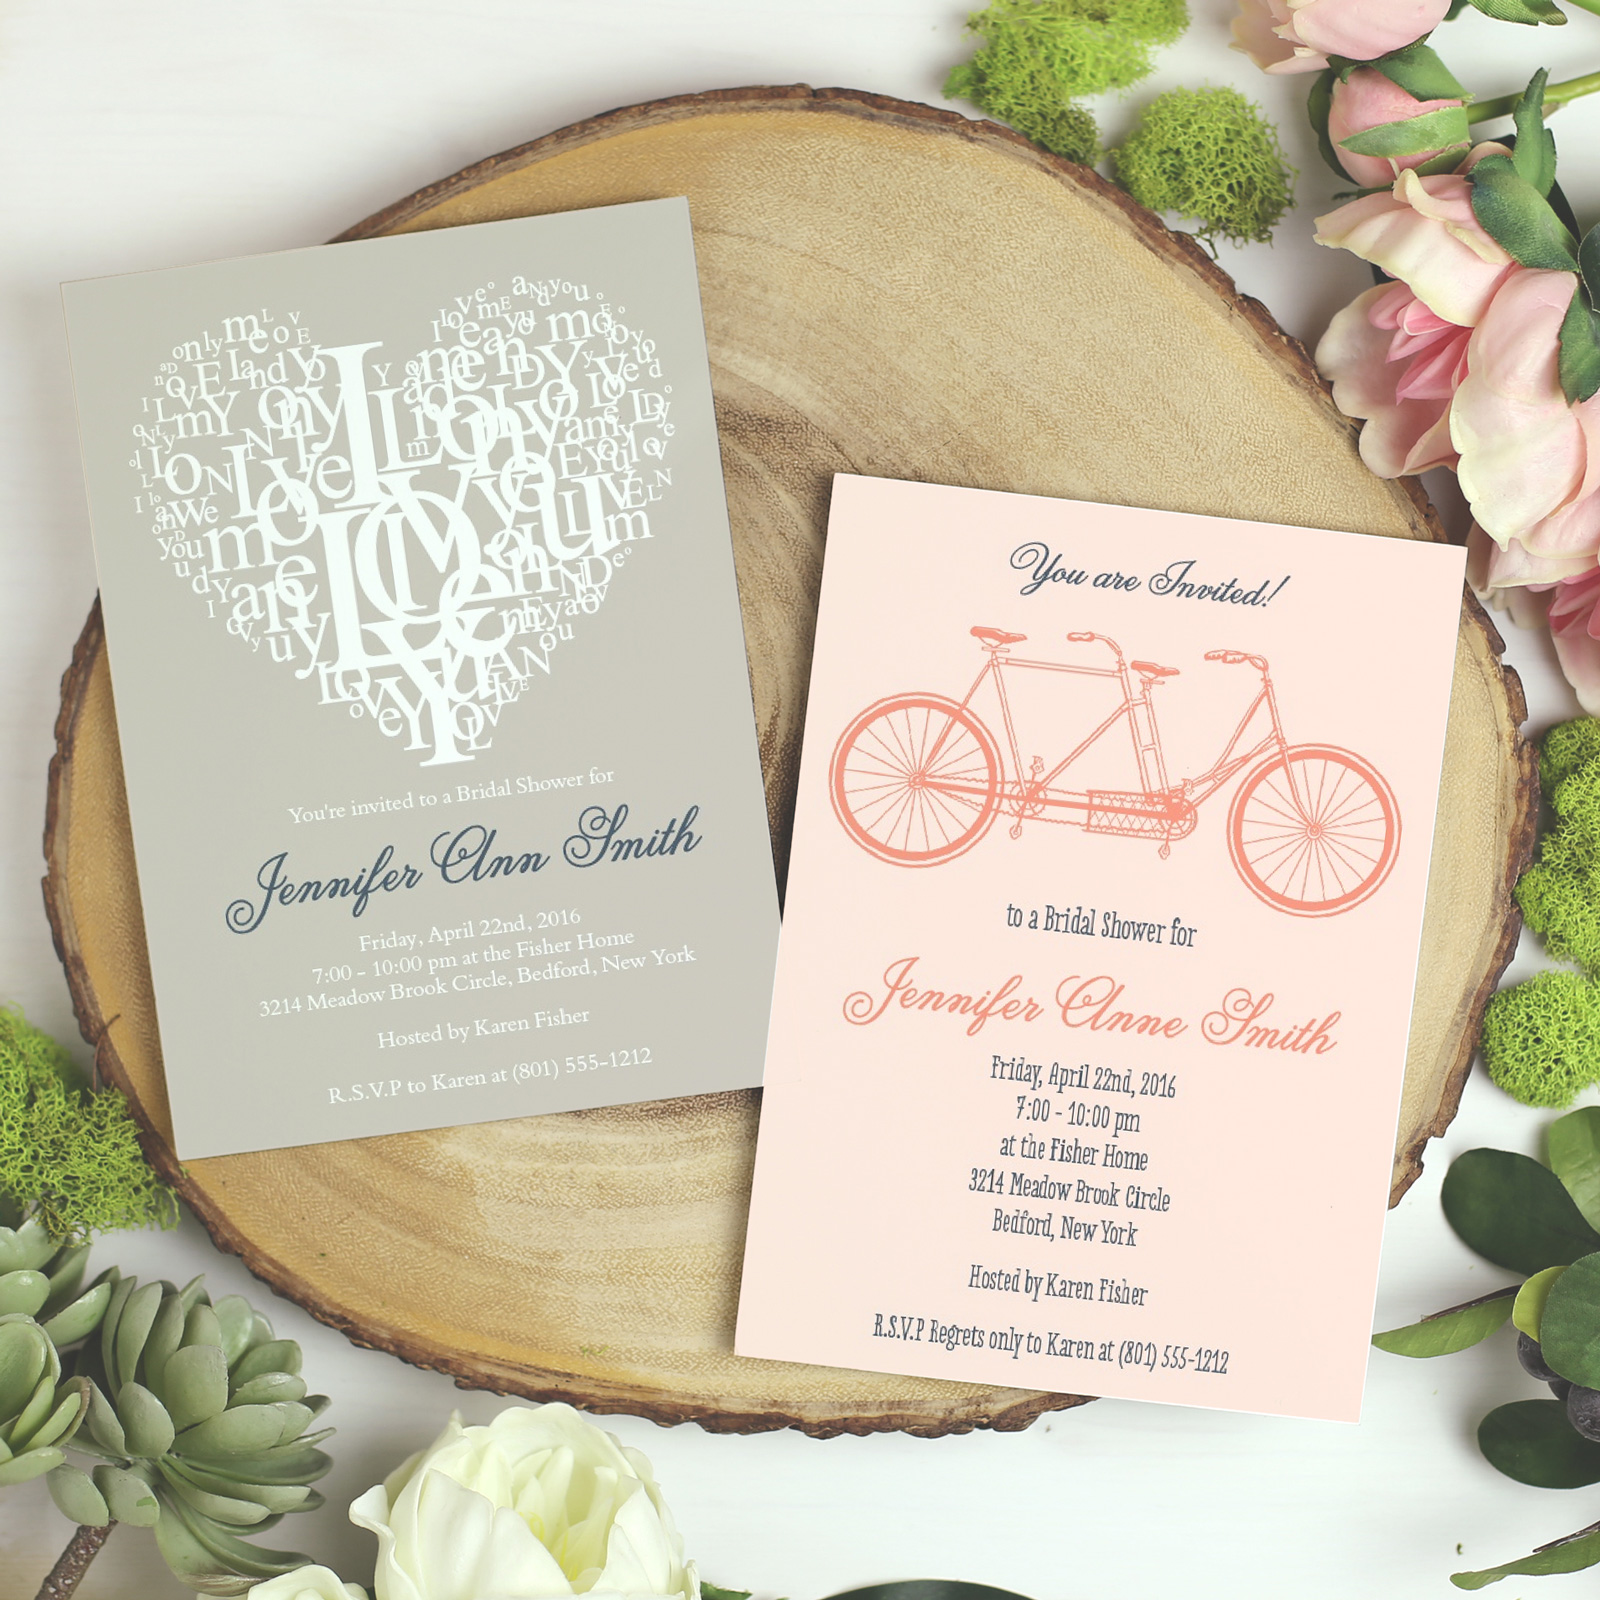 Basic Invite bridal shower and wedding invitations